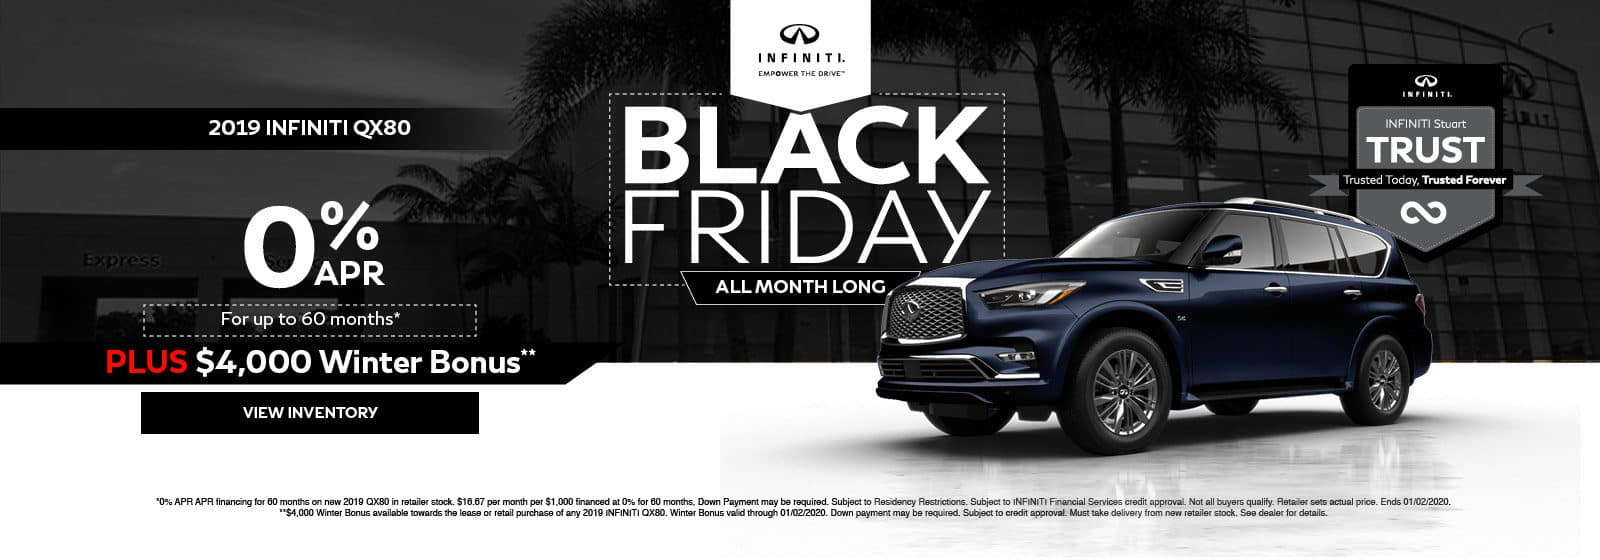 INFINITI Stuart QX80 Black Friday special